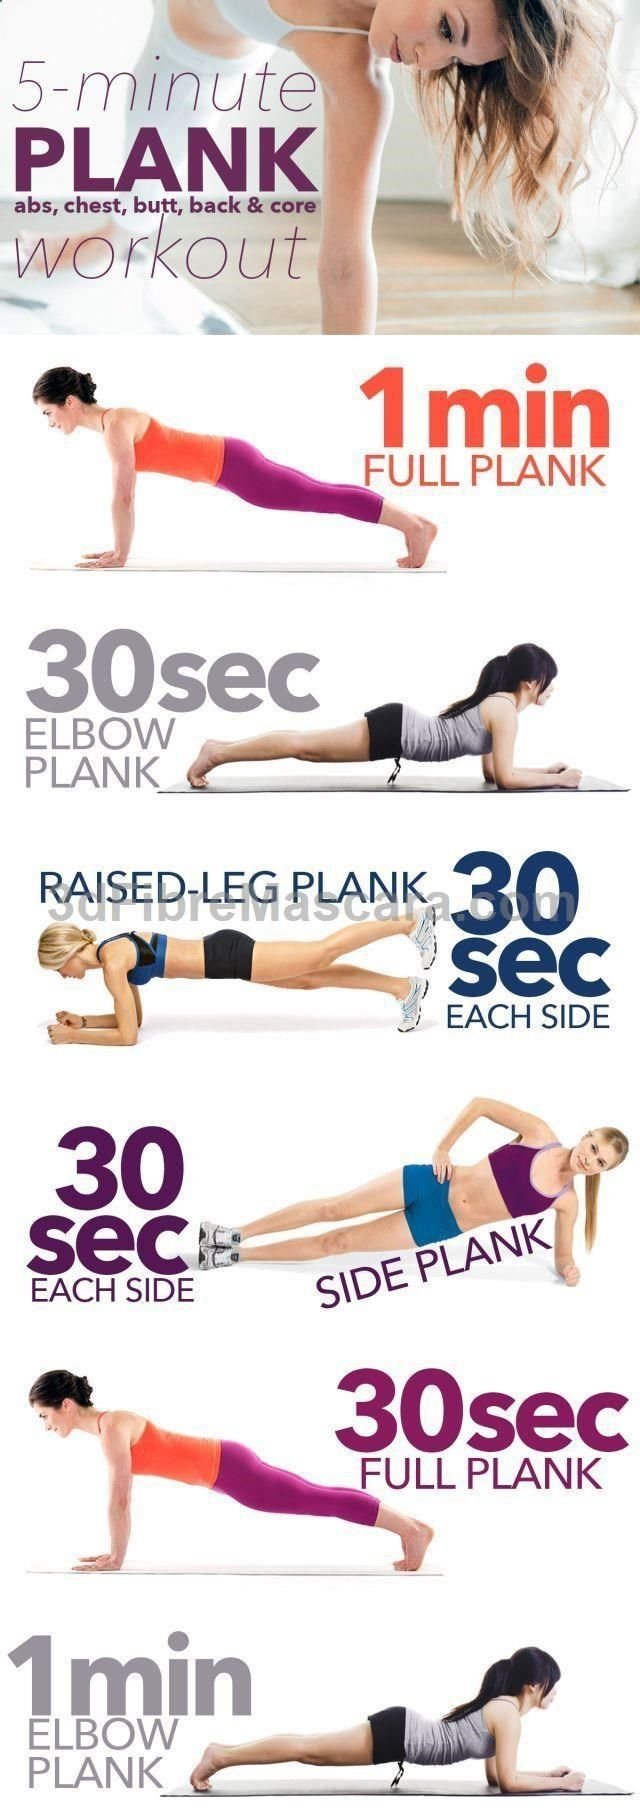 9 Amazing Flat Belly Workouts To Help Sculpt Your Abs! #diet #dieting #lowcalories #dietplan #excercise #diabetic #diabetes #slimming #weightloss #loseweight #loseweightfast